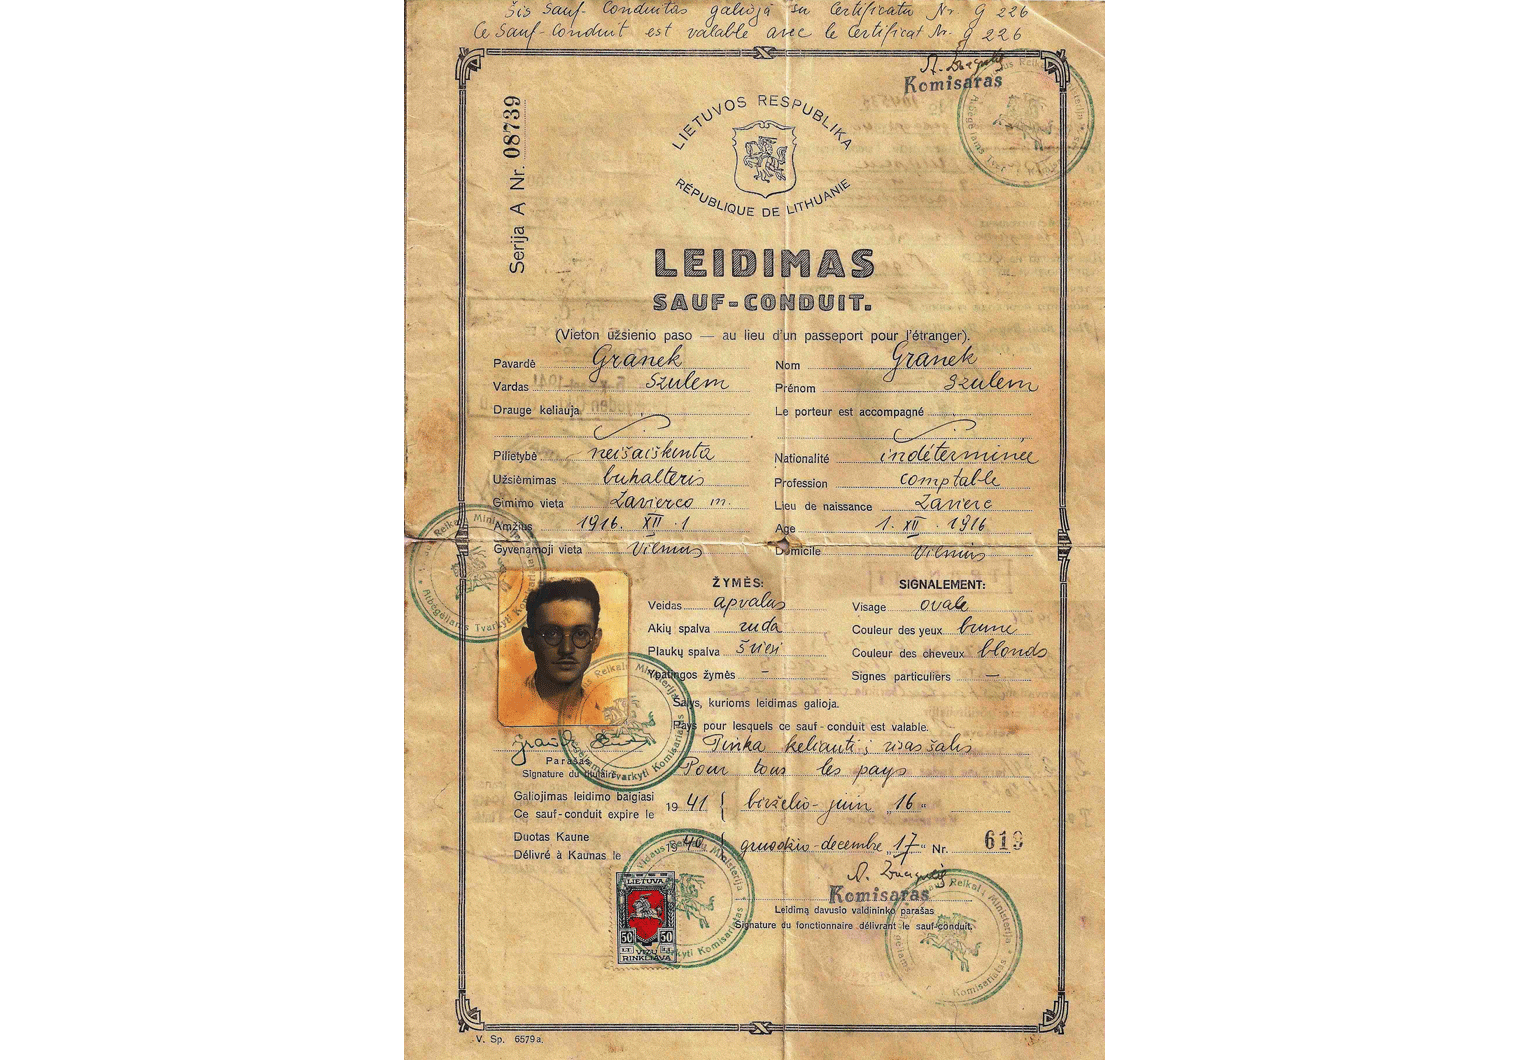 WW2 refugee travel document